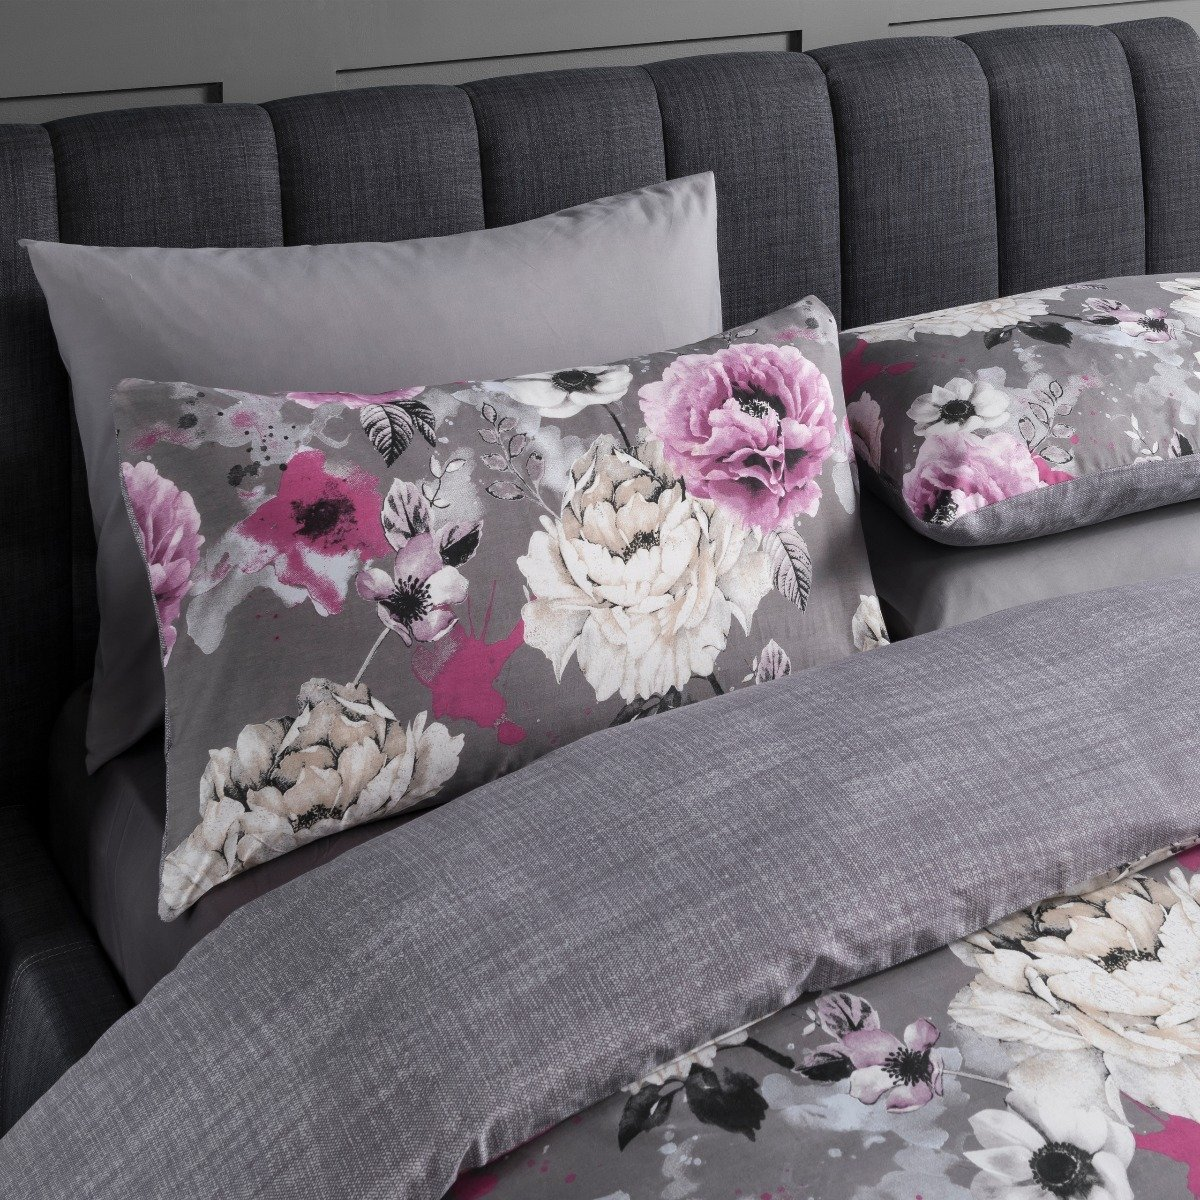 Inky Floral Grey Bedding - Reversible Duvet Cover and Pillowcase Set